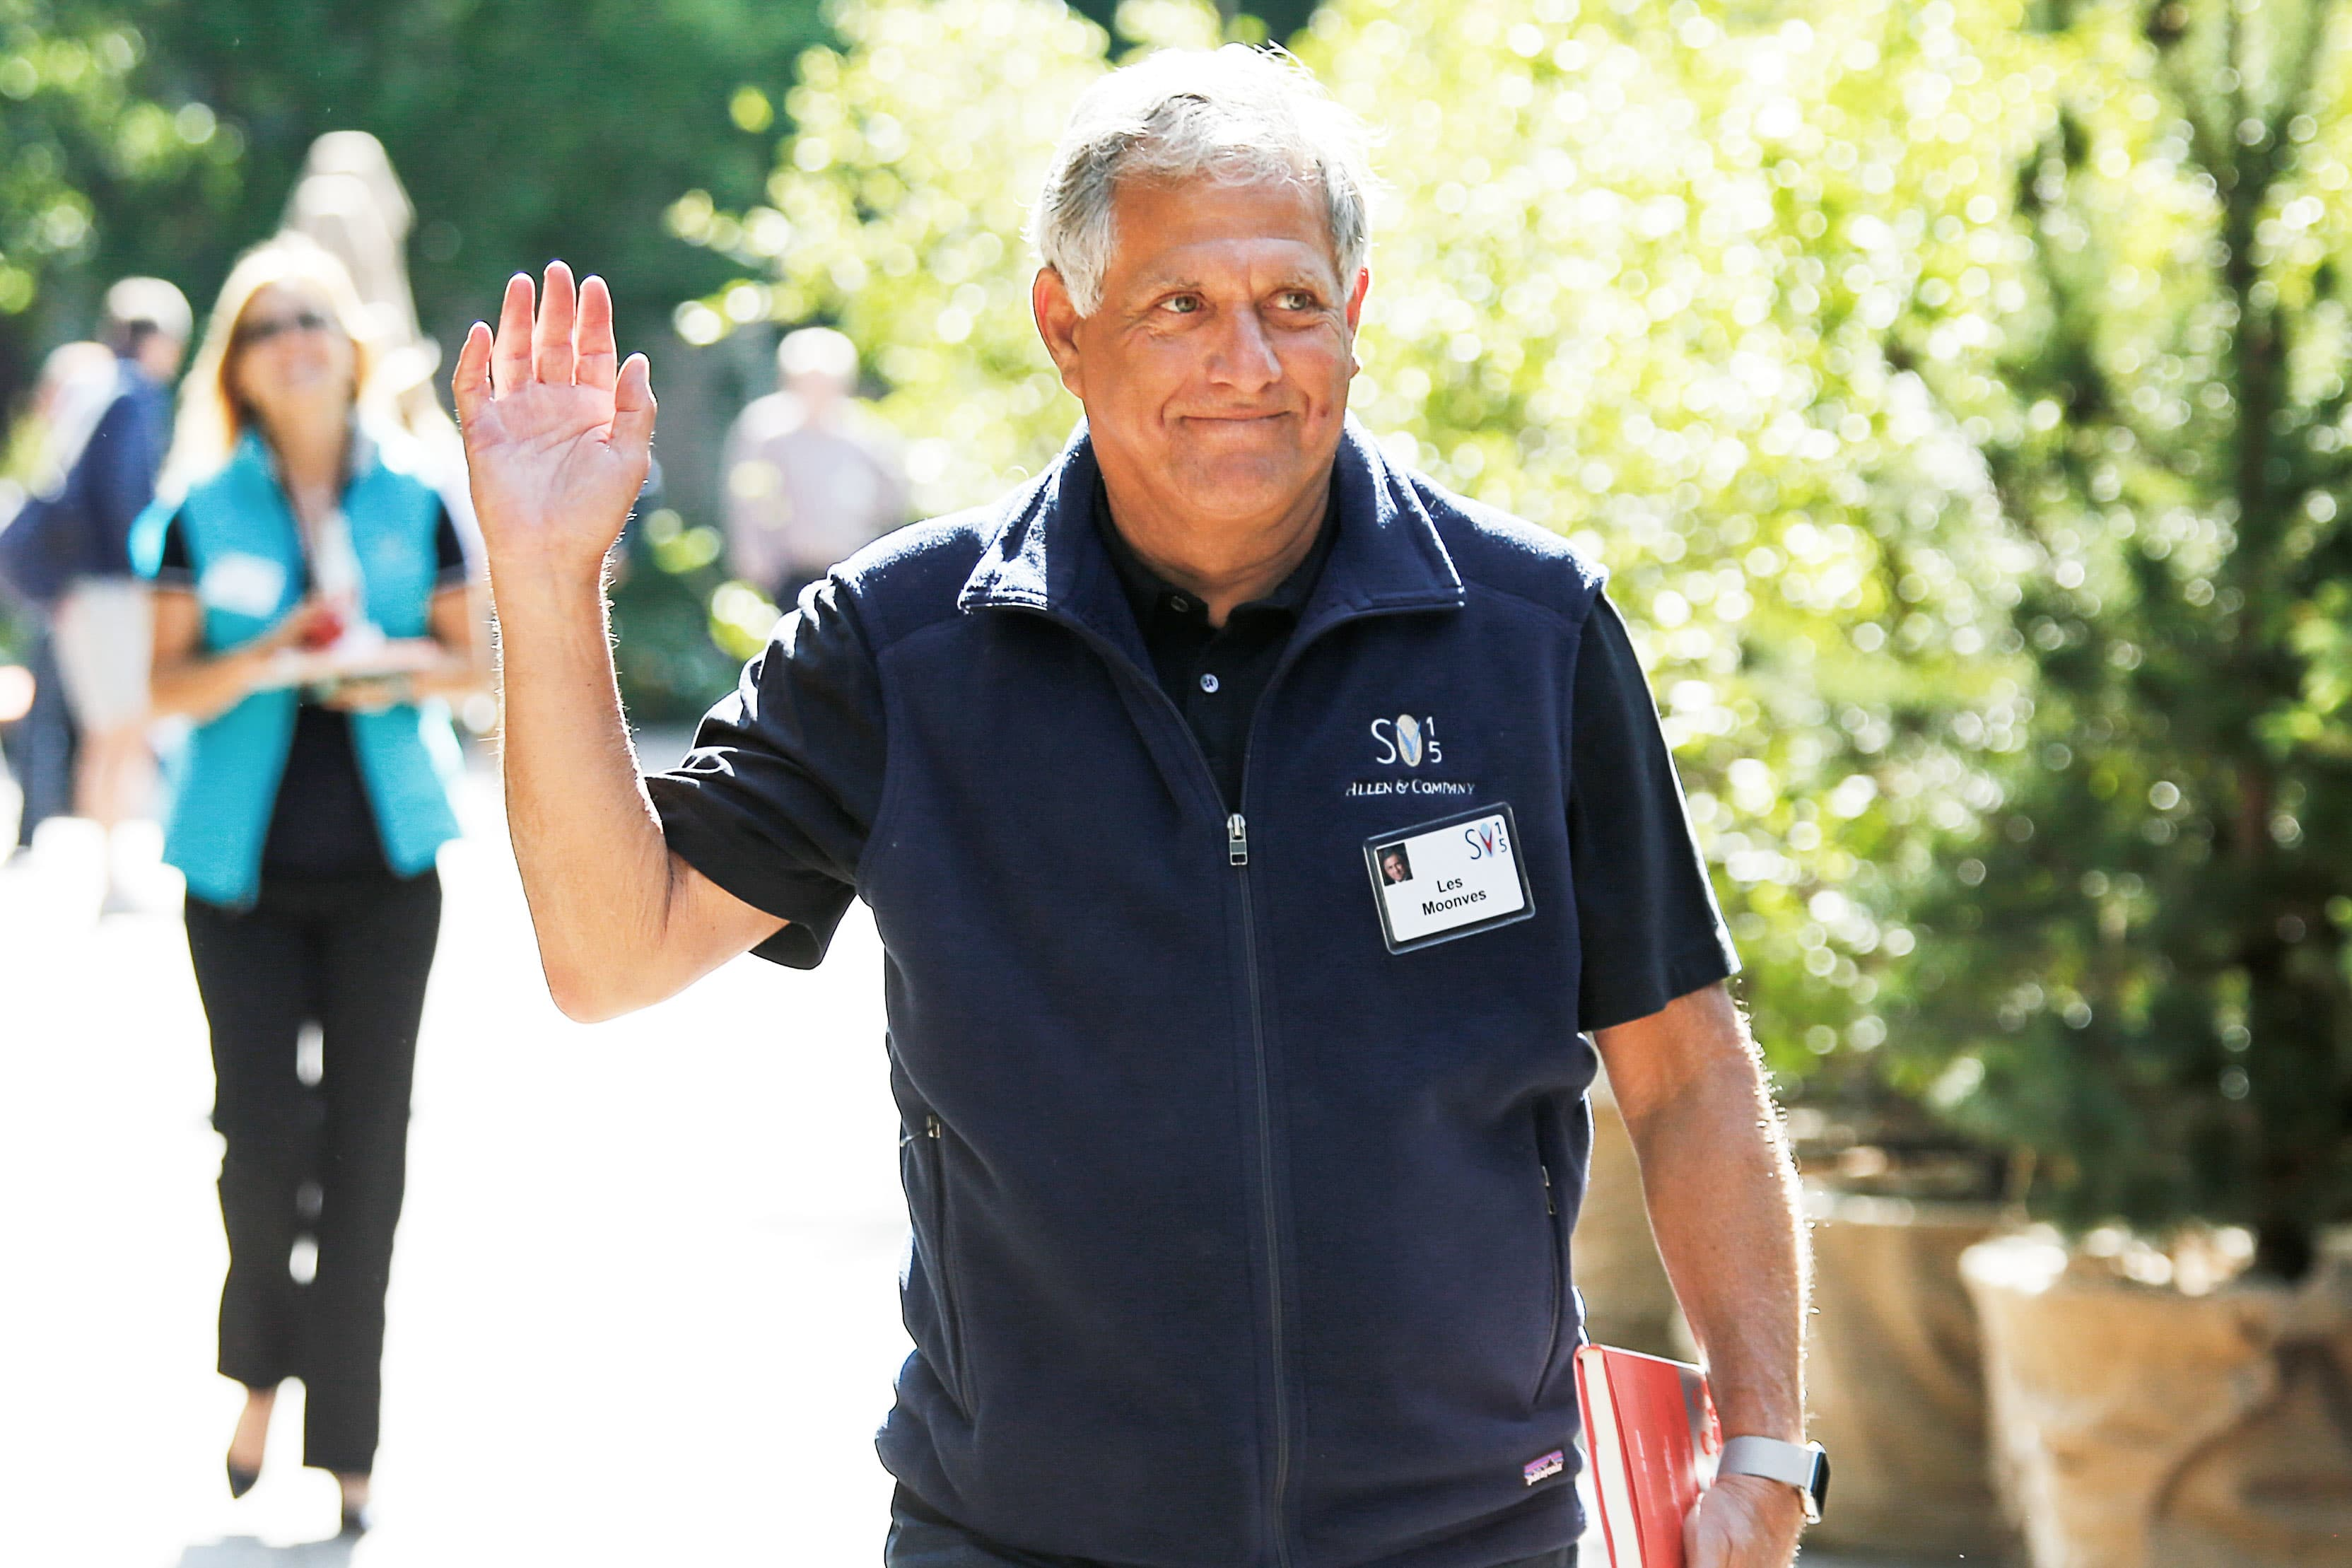 Moonves drops lawsuits to secure $ 120 million severance pay for CBS